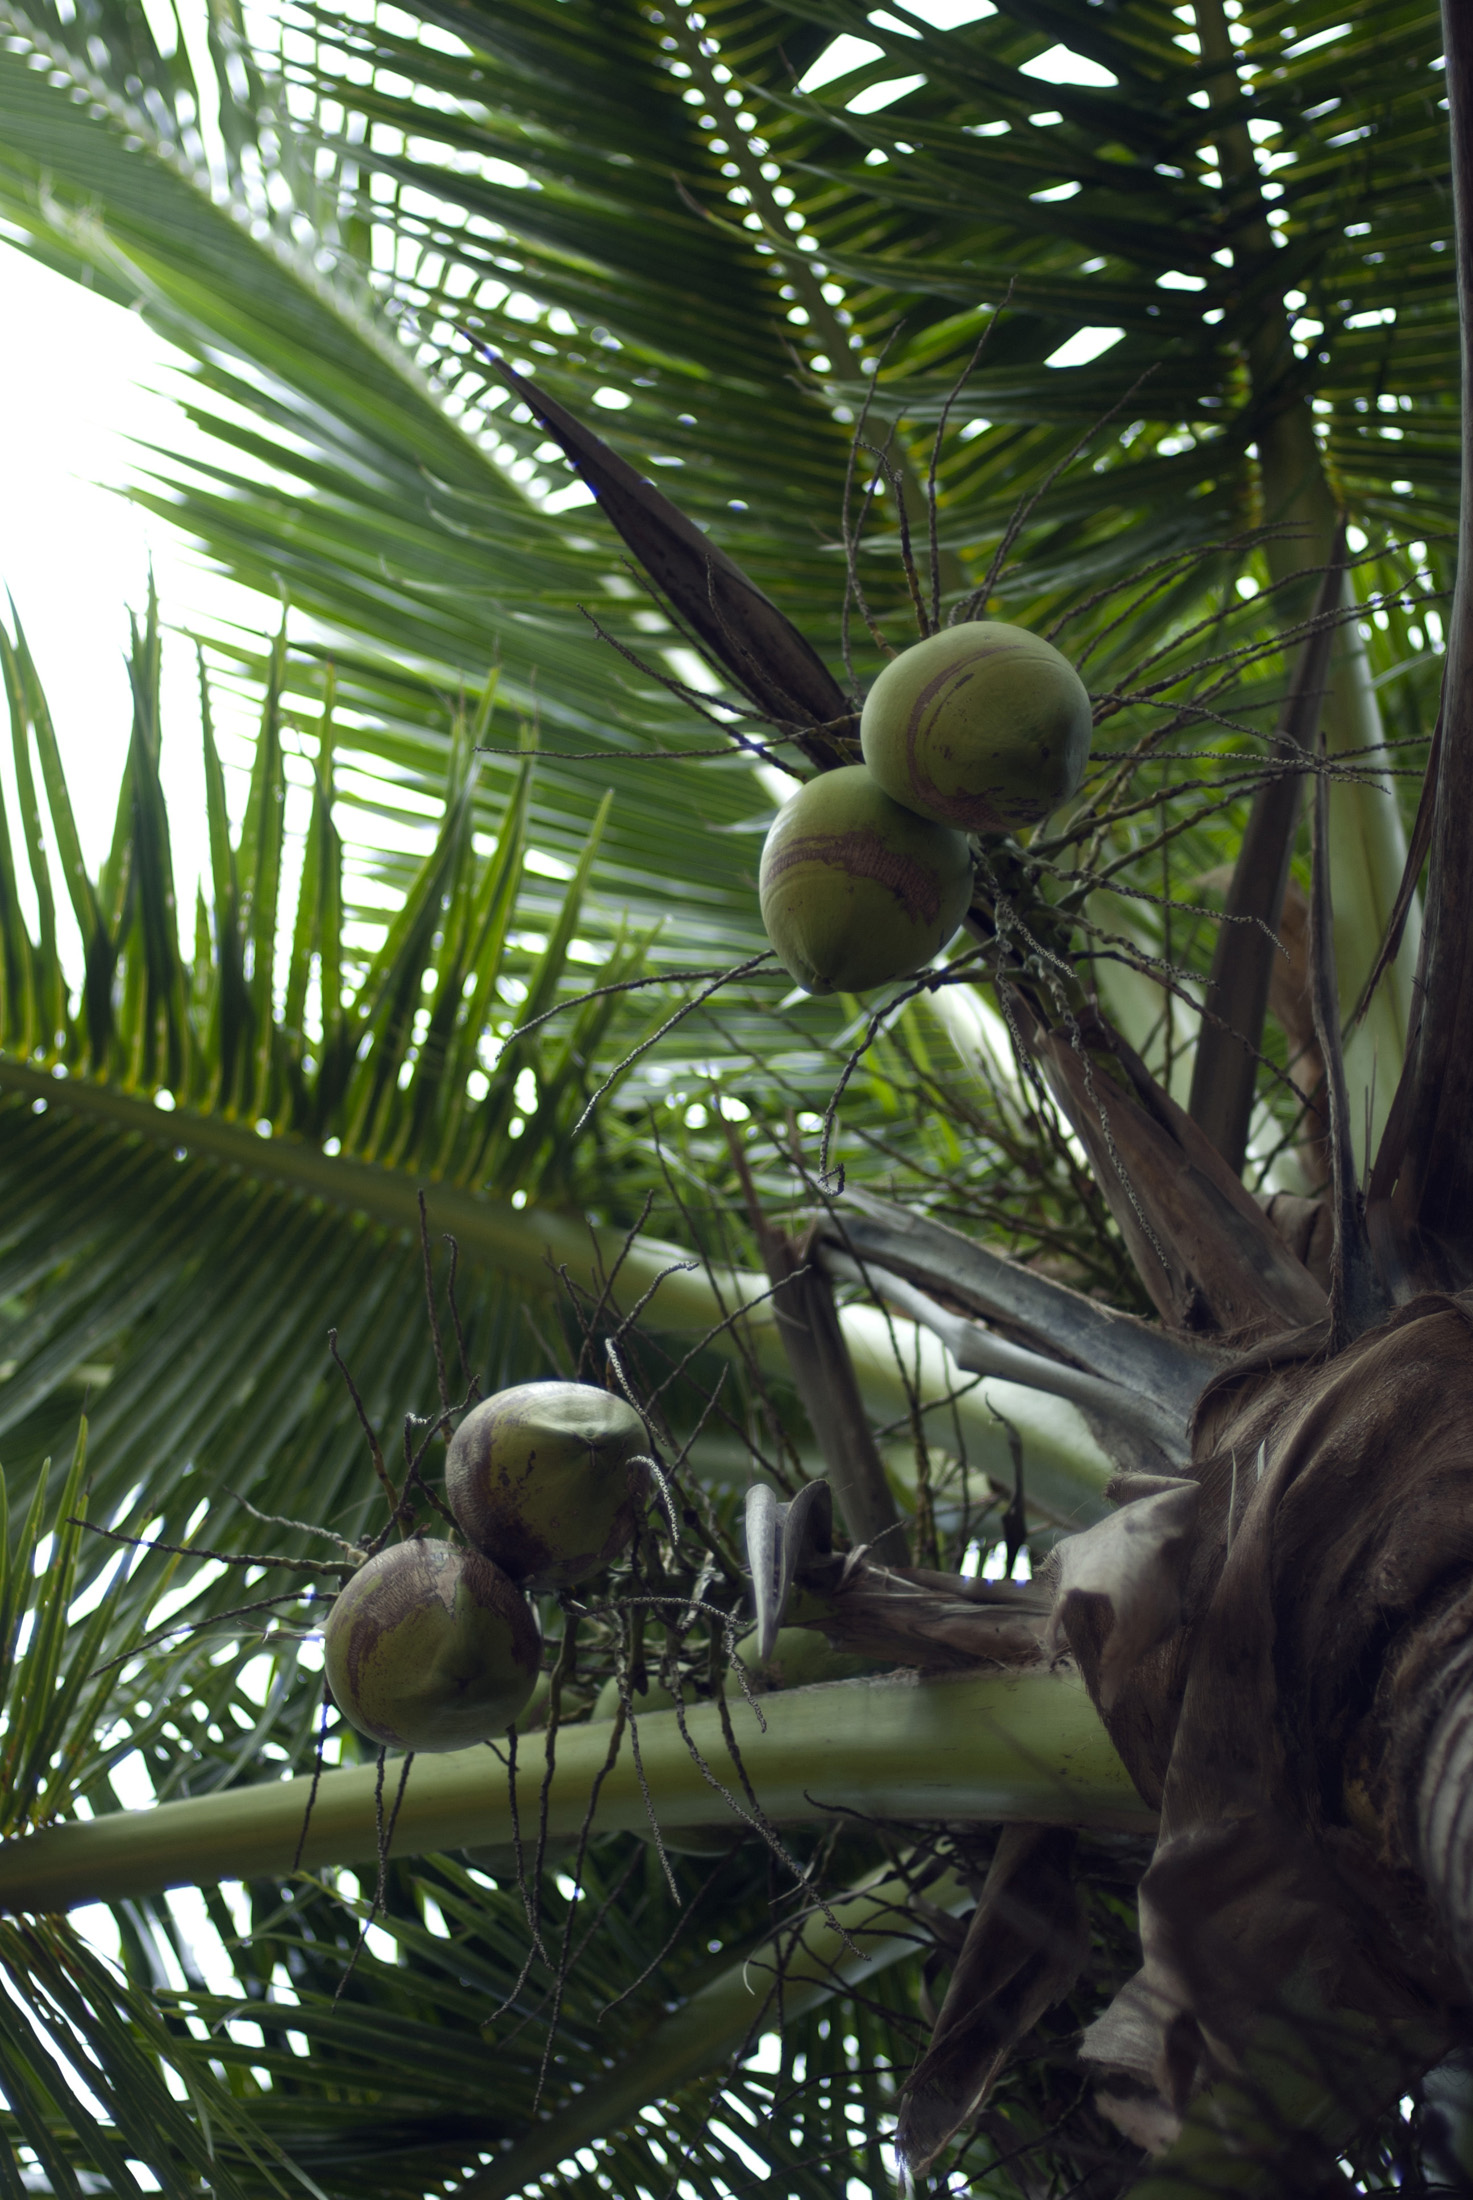 Low angle view looking straight up the trunk at ripening coconuts in a palm tree, symbolic of tropical travel and vacations